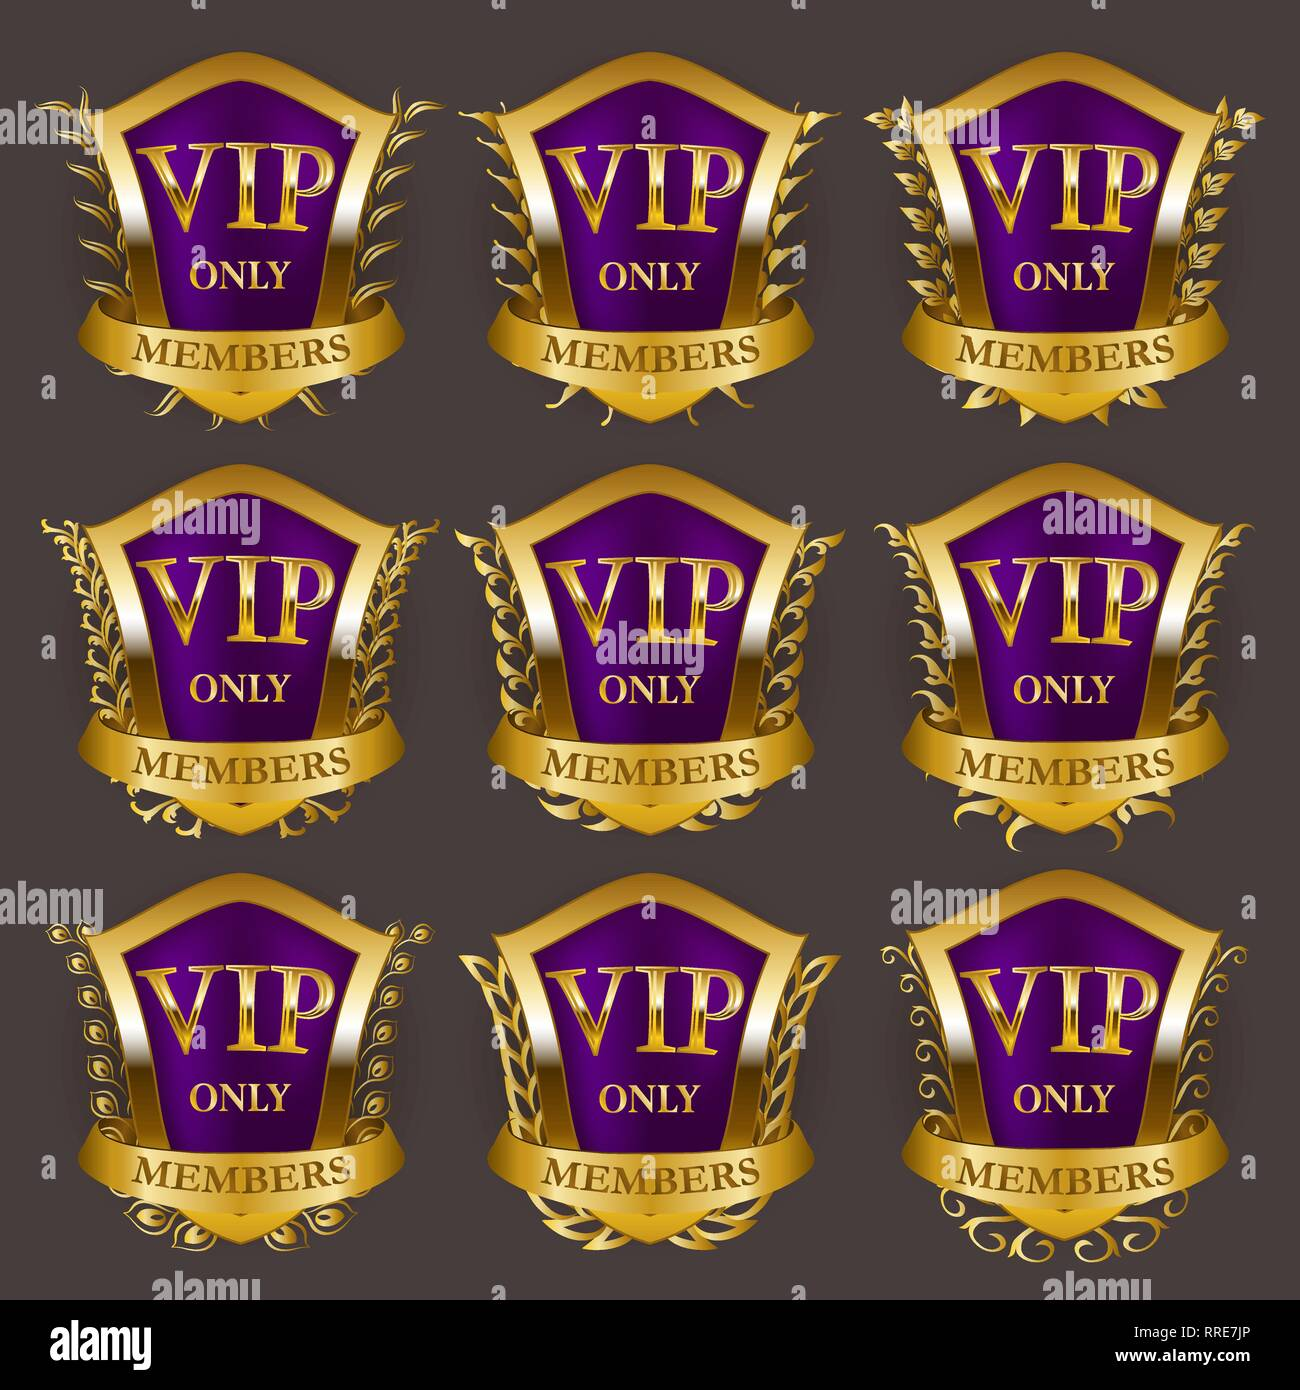 Set of gold vip monograms for graphic design on gray background. - Stock Vector